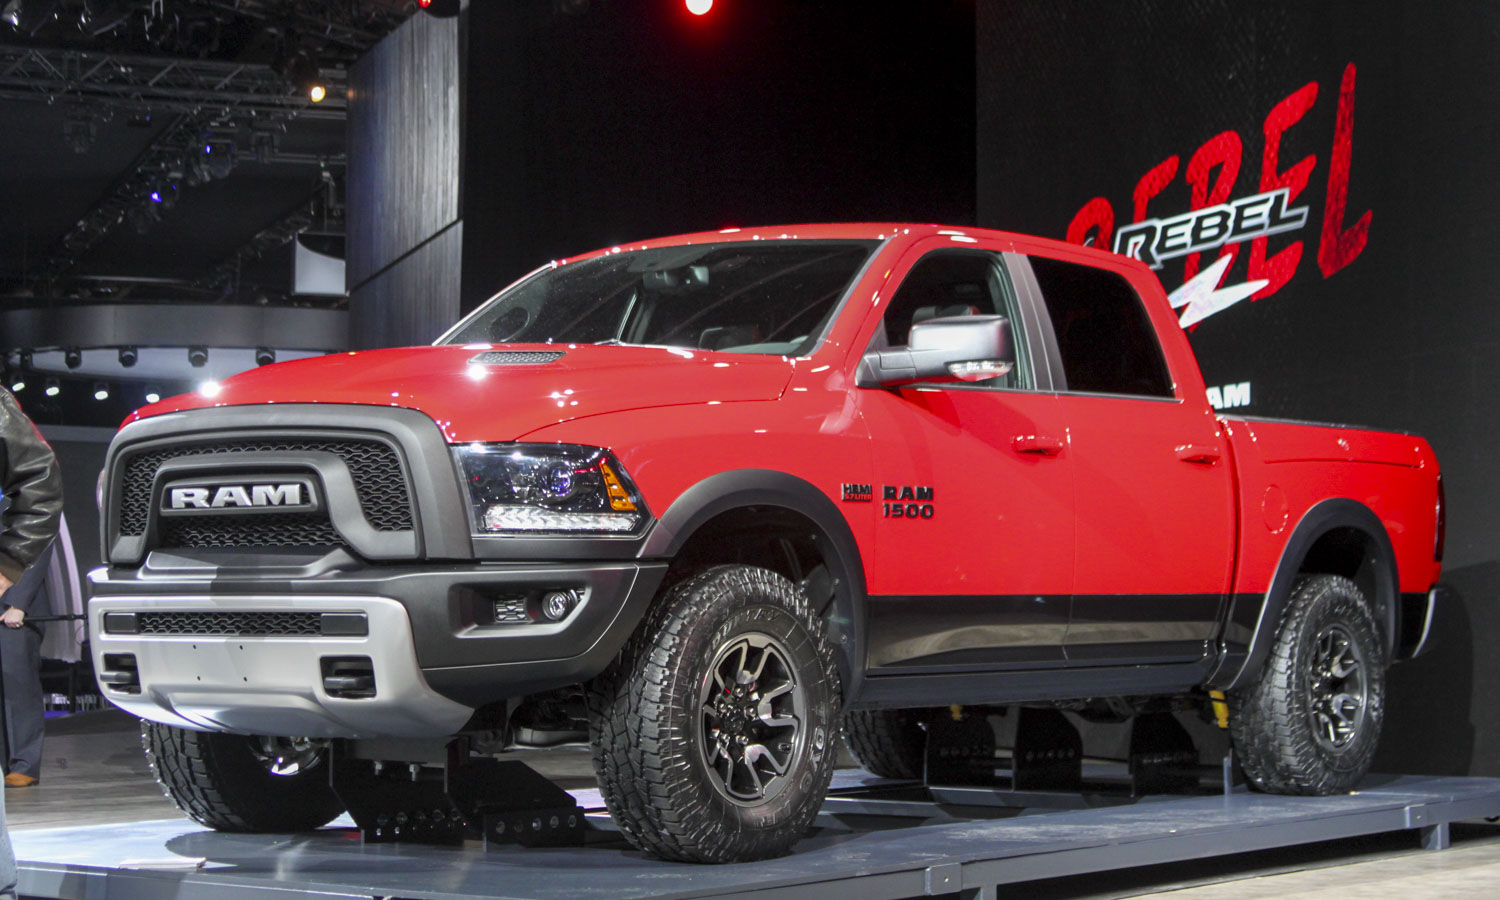 Ram 1500 Rebel (c) Perry Stern